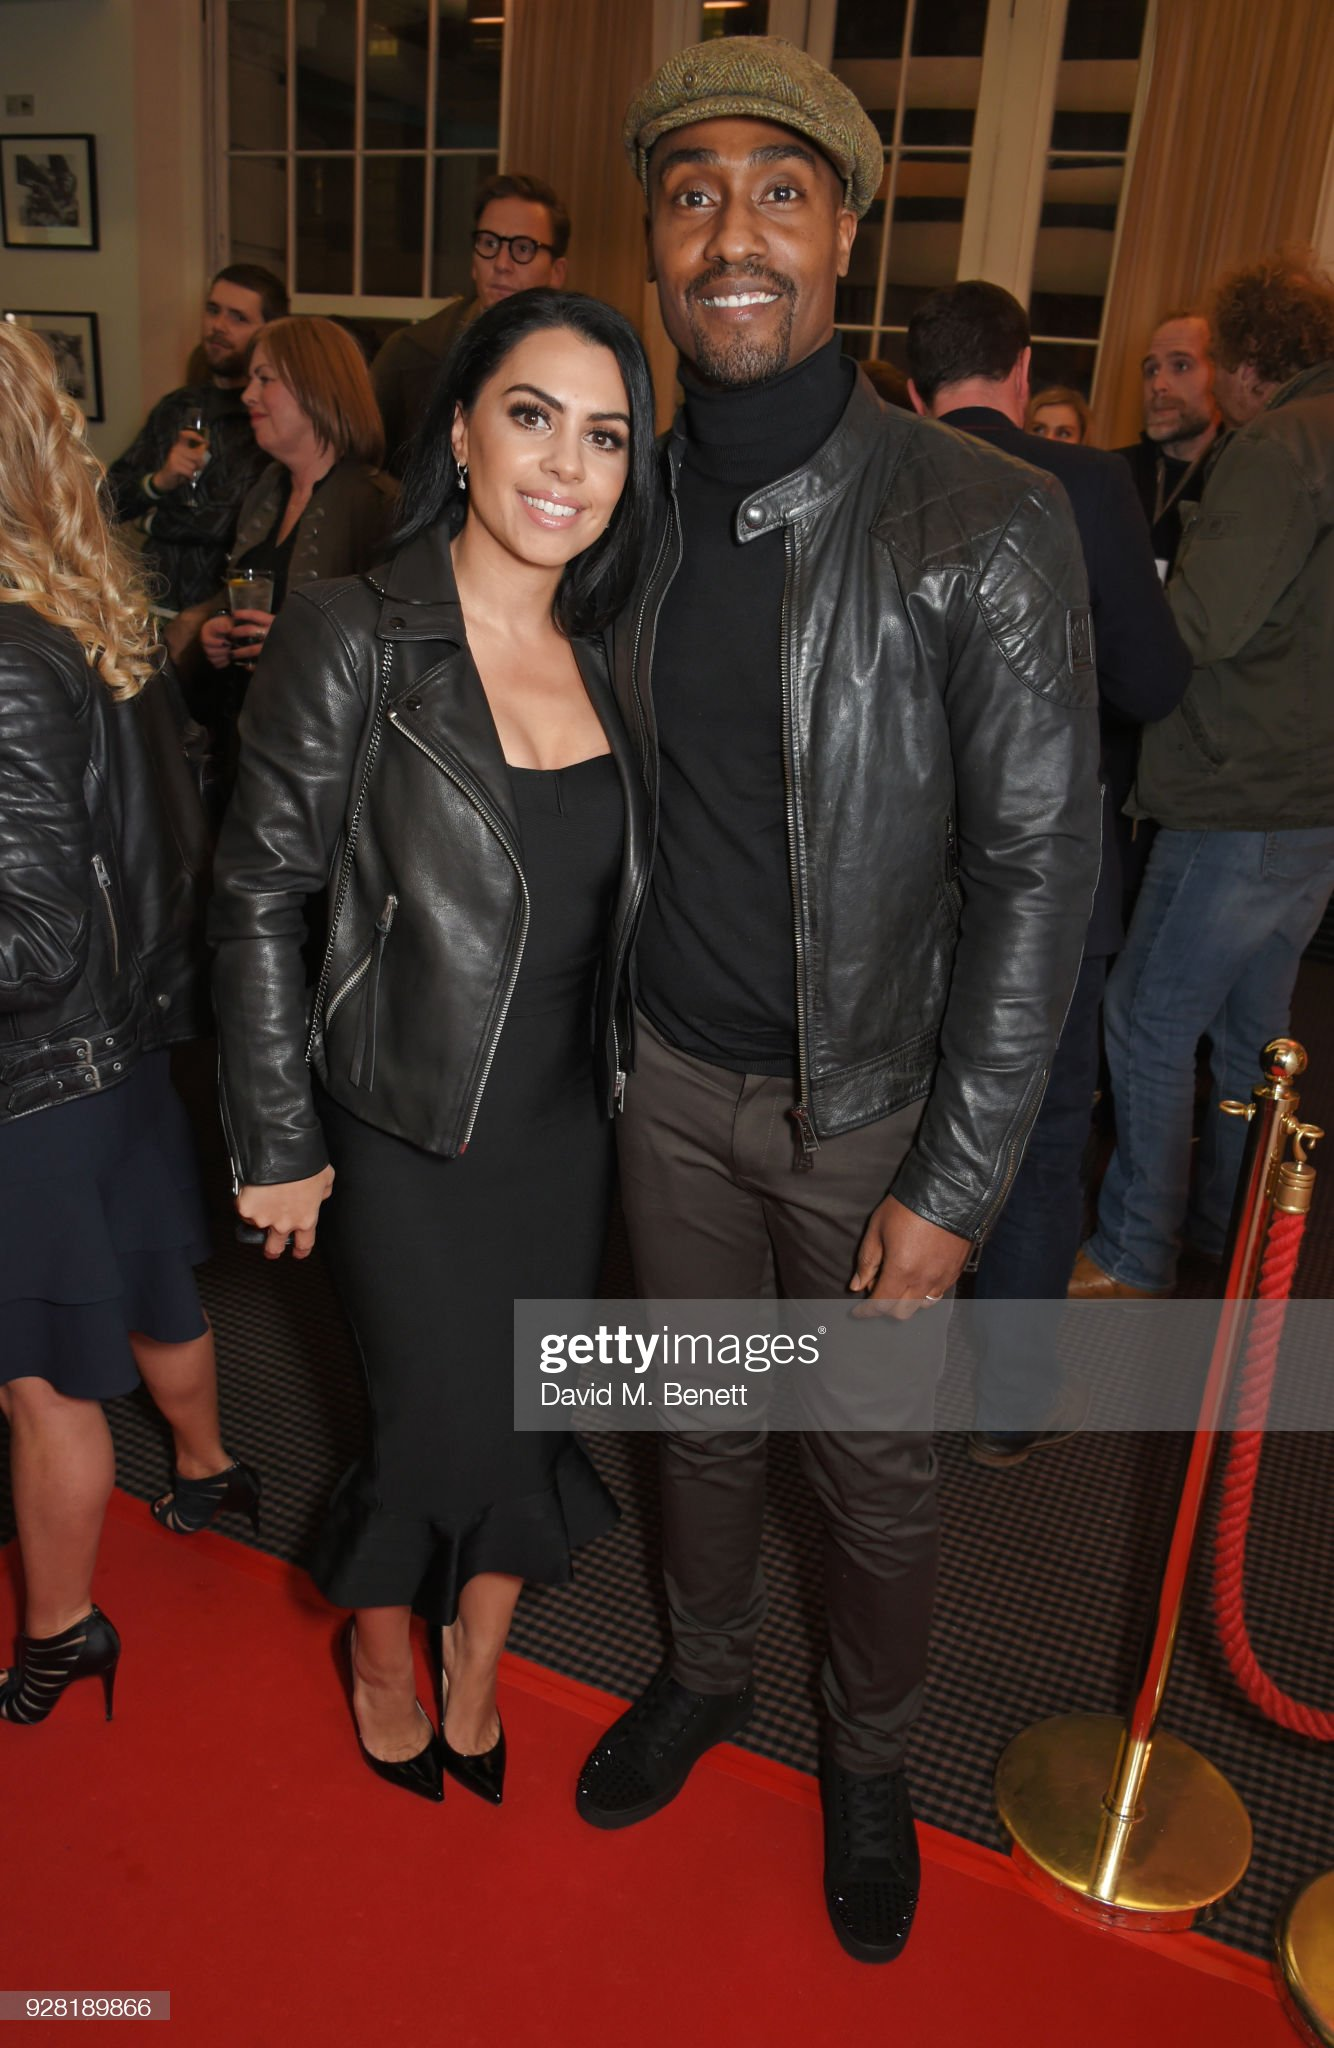 ¿Cuánto mide Ayshen Kemal? - Altura - Real height Ayshen-kemal-and-simon-webbe-attend-the-launch-of-intertalent-rights-picture-id928189866?s=2048x2048